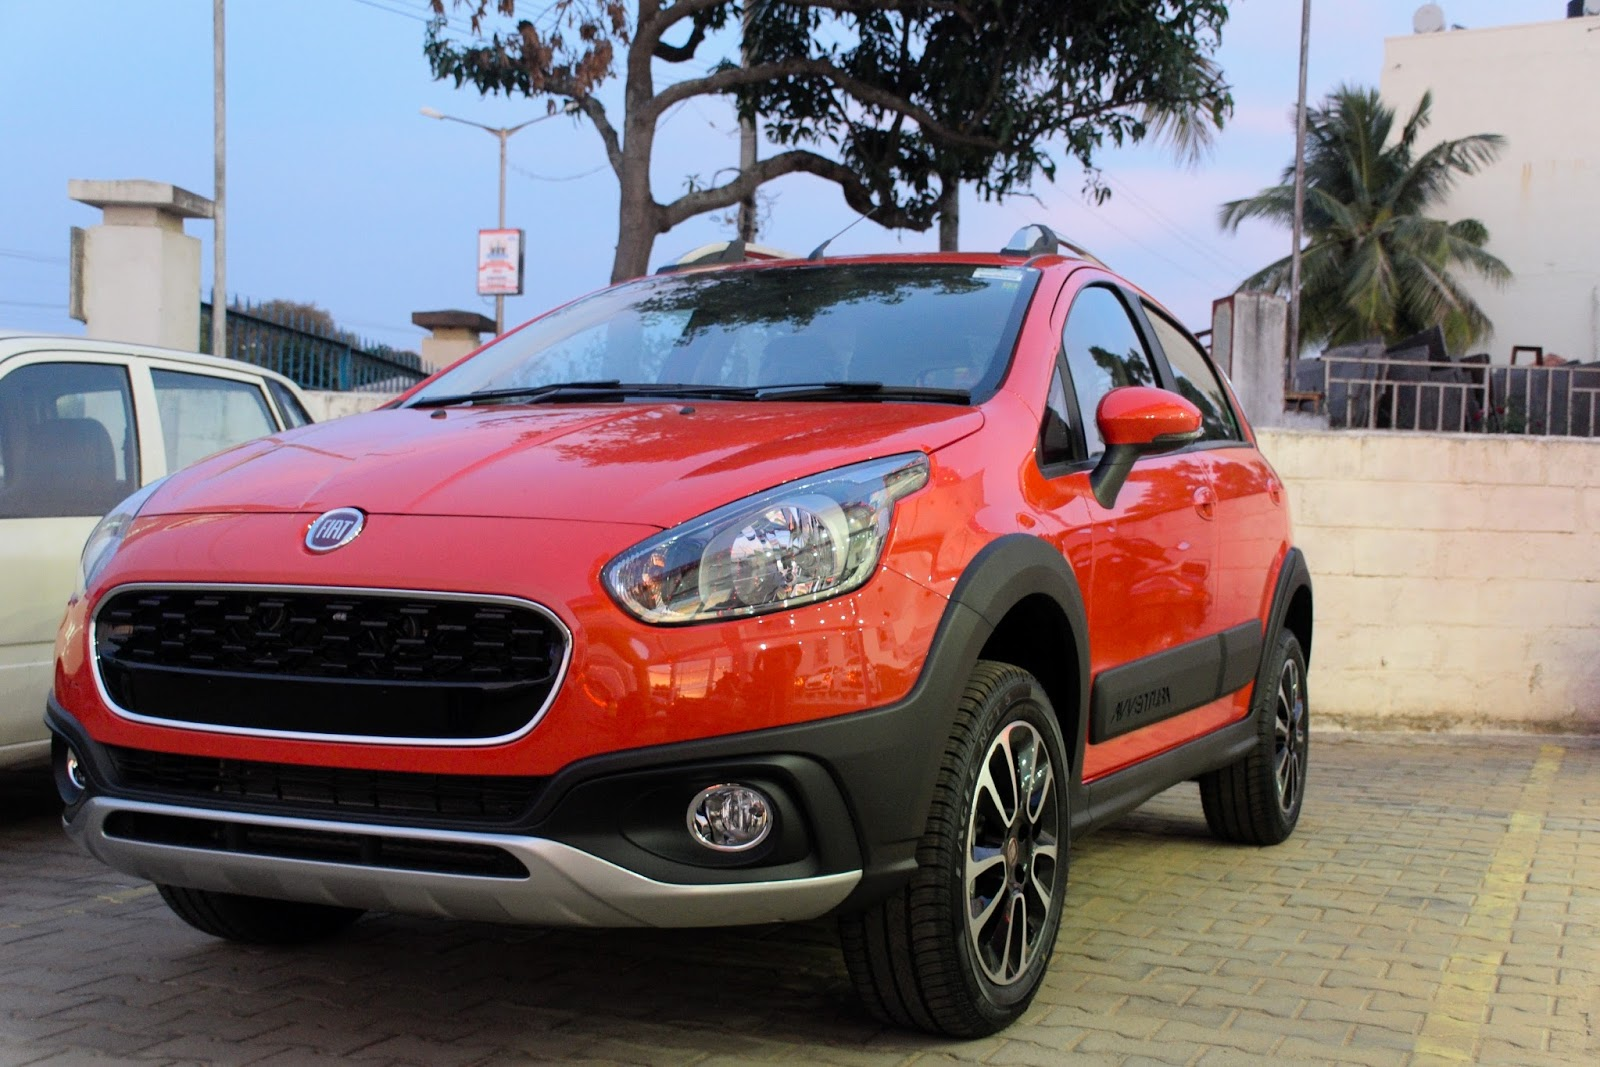 Review of Fiat Avventura - Indian Car Reviews